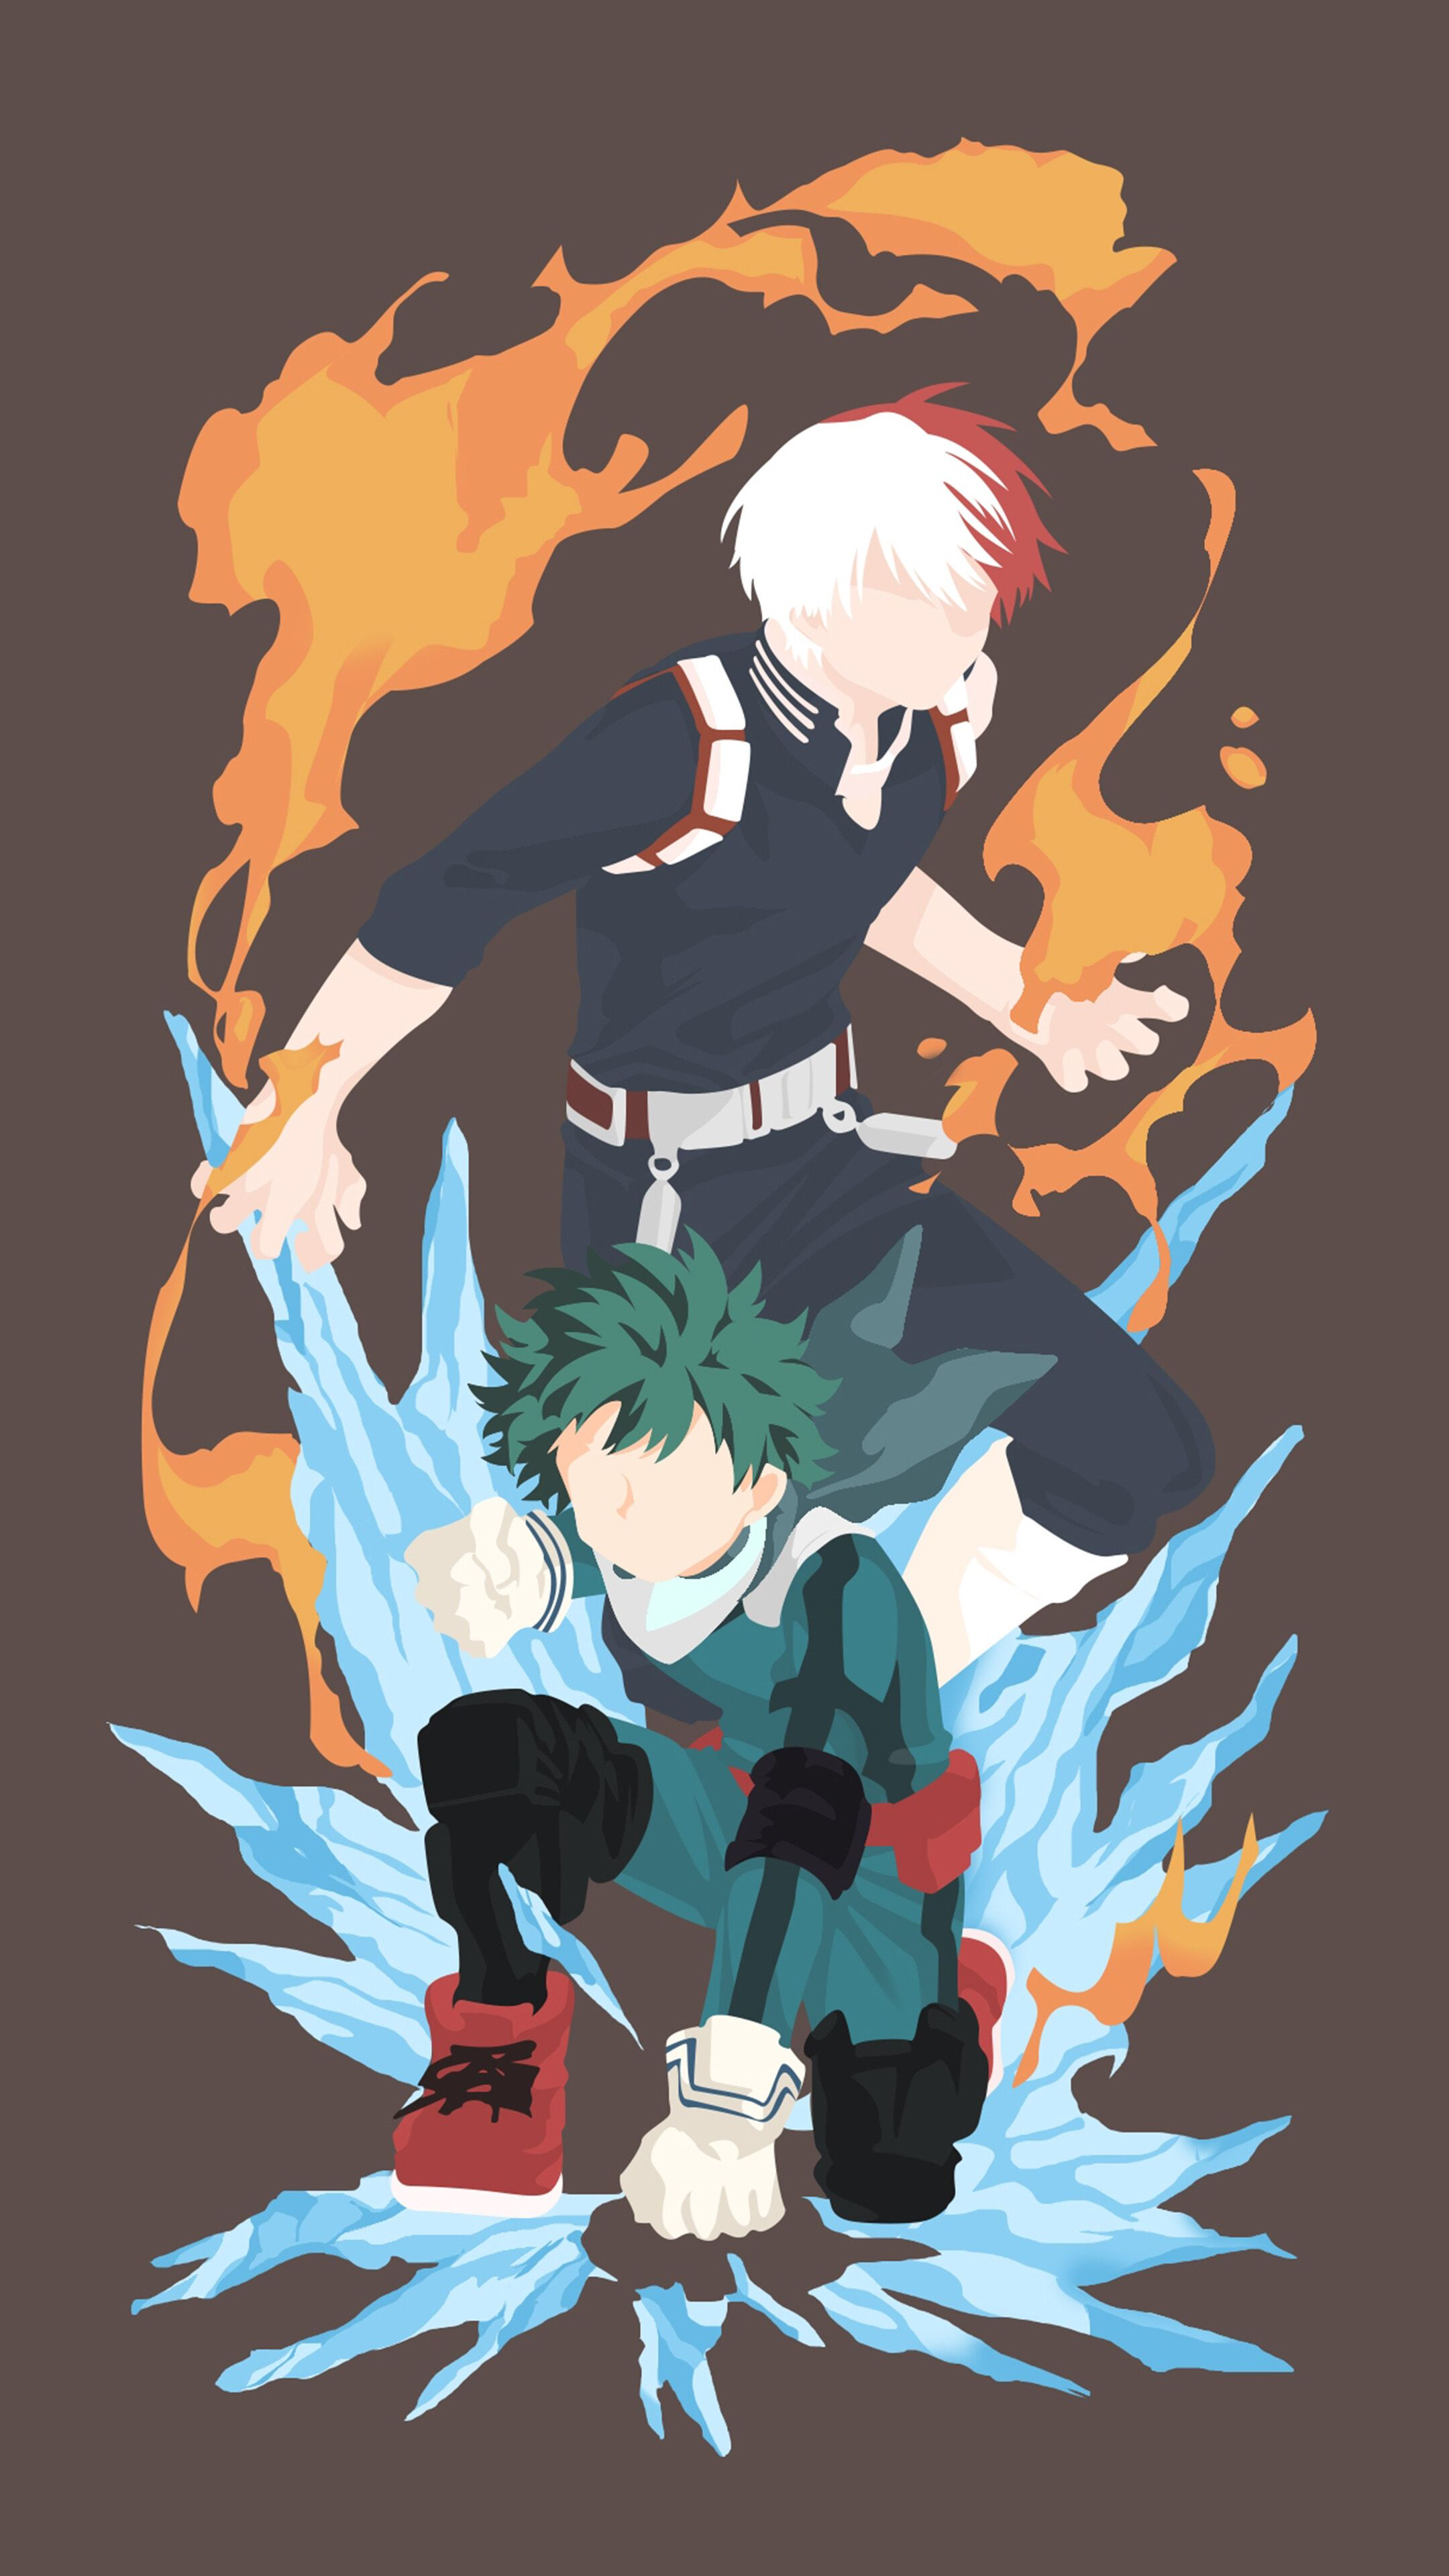 Pin By Rey Nelson On Our Hero Academia In 2020 Anime Wallpaper Hero Wallpaper Hero